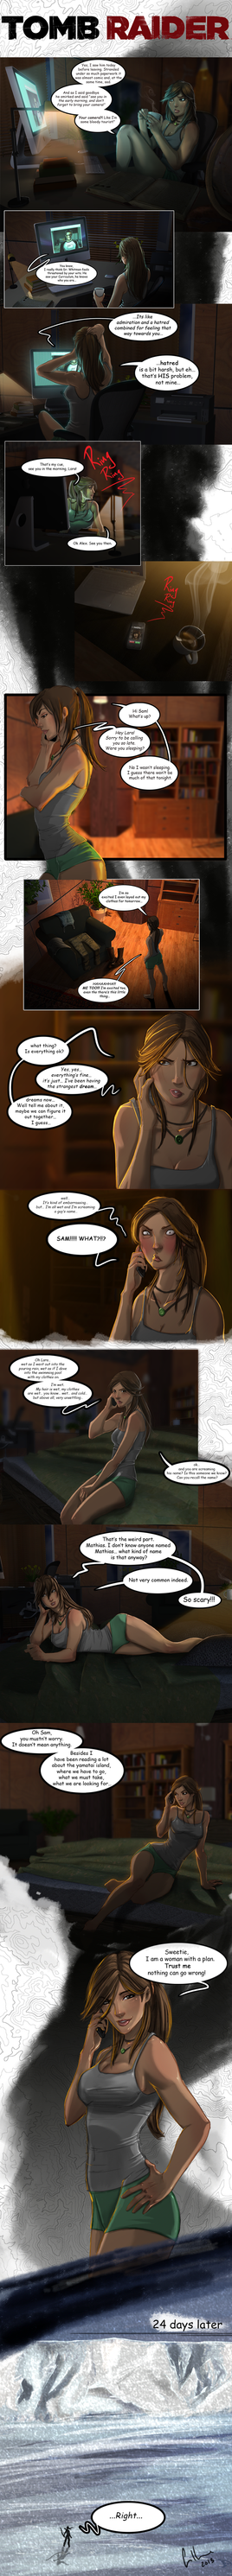 The (true) Final Hours of Tomb Raider by UltimateTattts